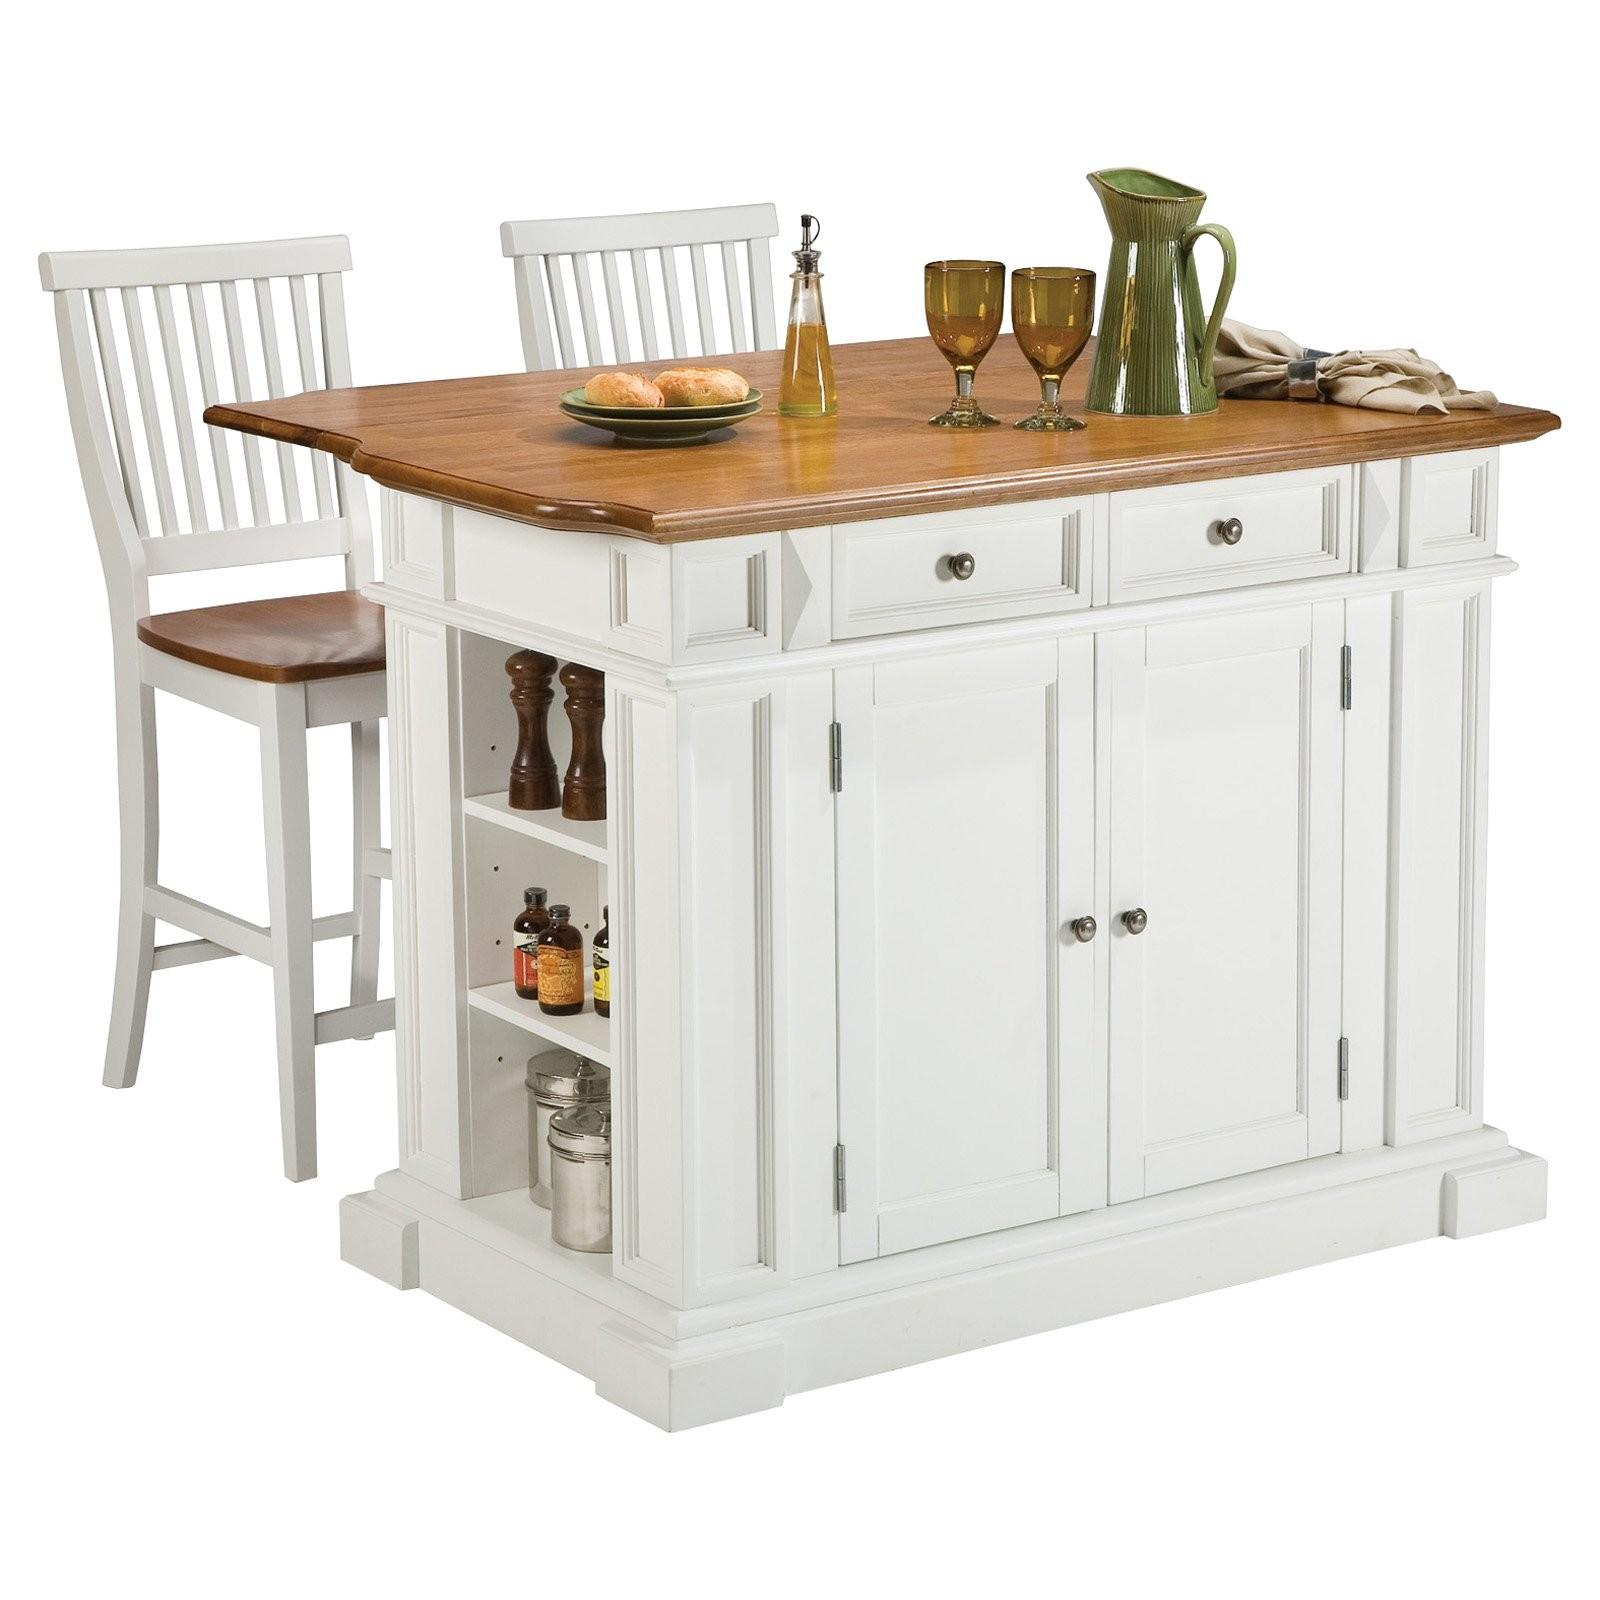 Kitchen Island Wheels Home Design Decor